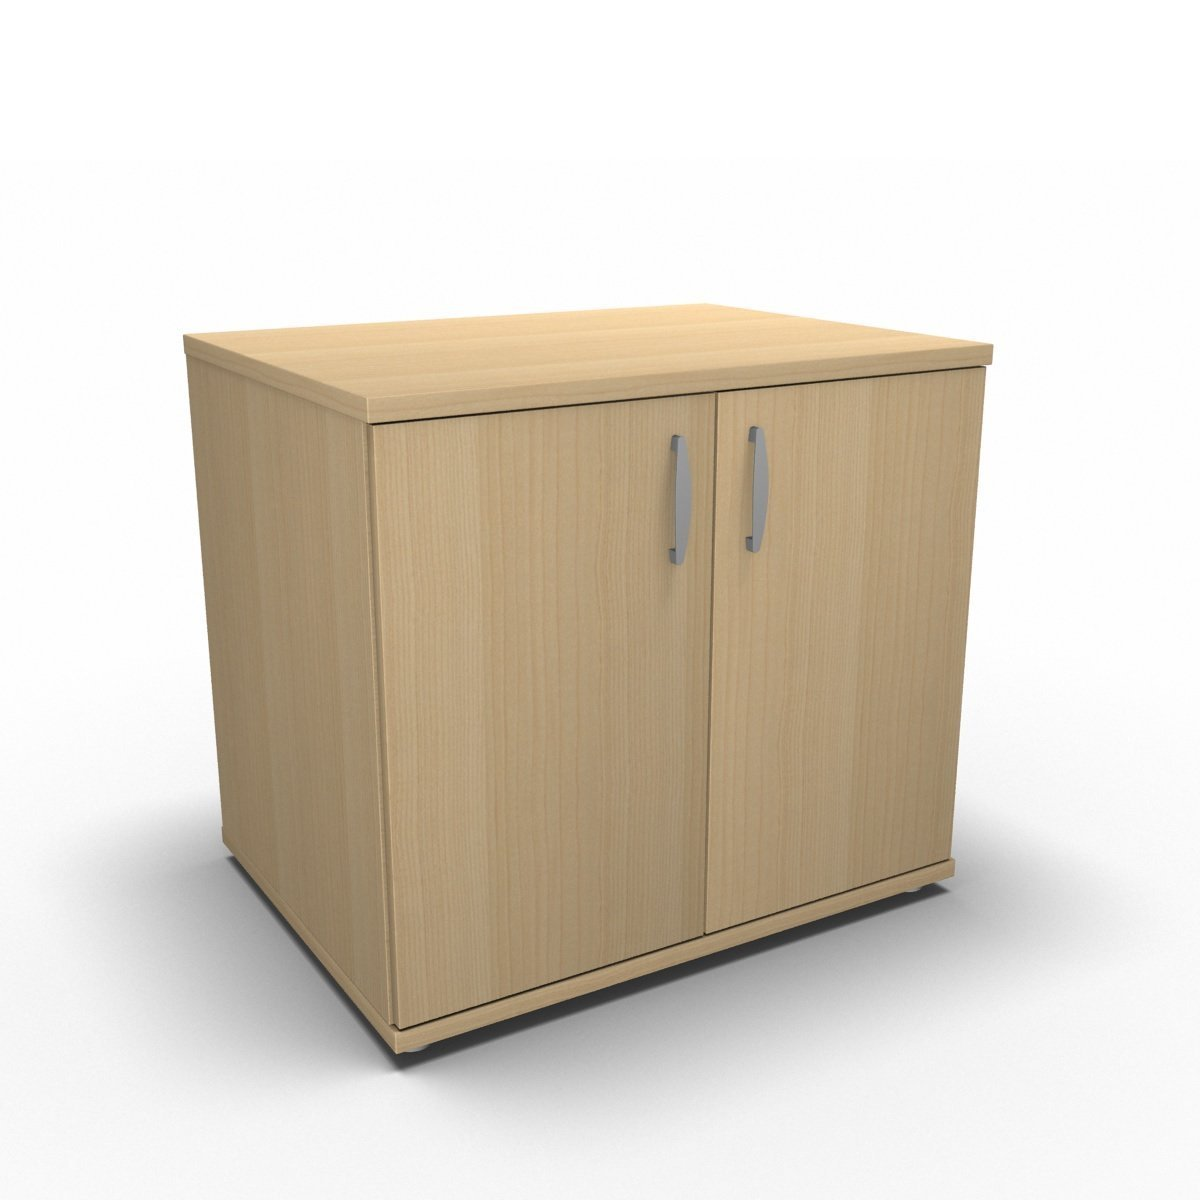 Cupboard 800 x 600 x 730mm / Maple Synergy Desk High Cupboard